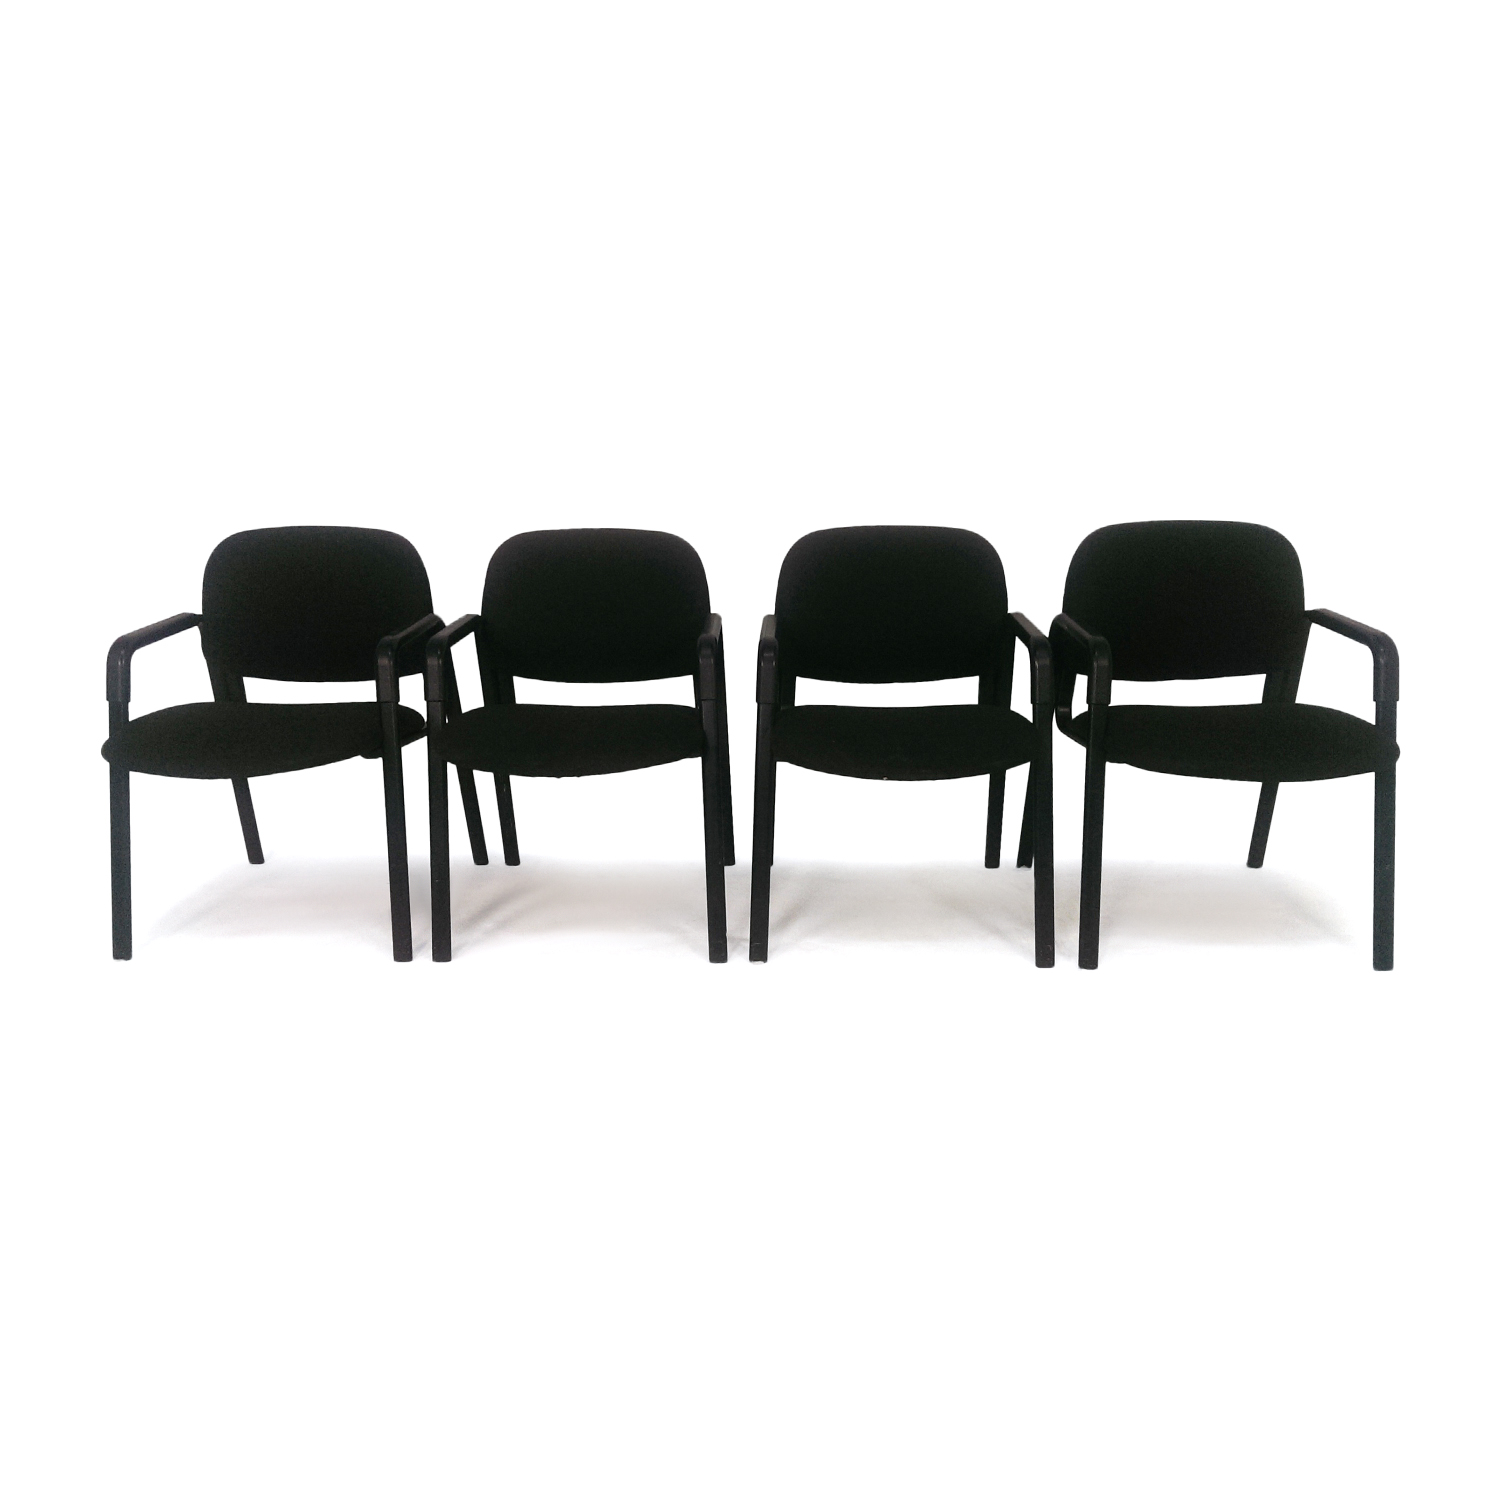 Set of 4 Chairs sale